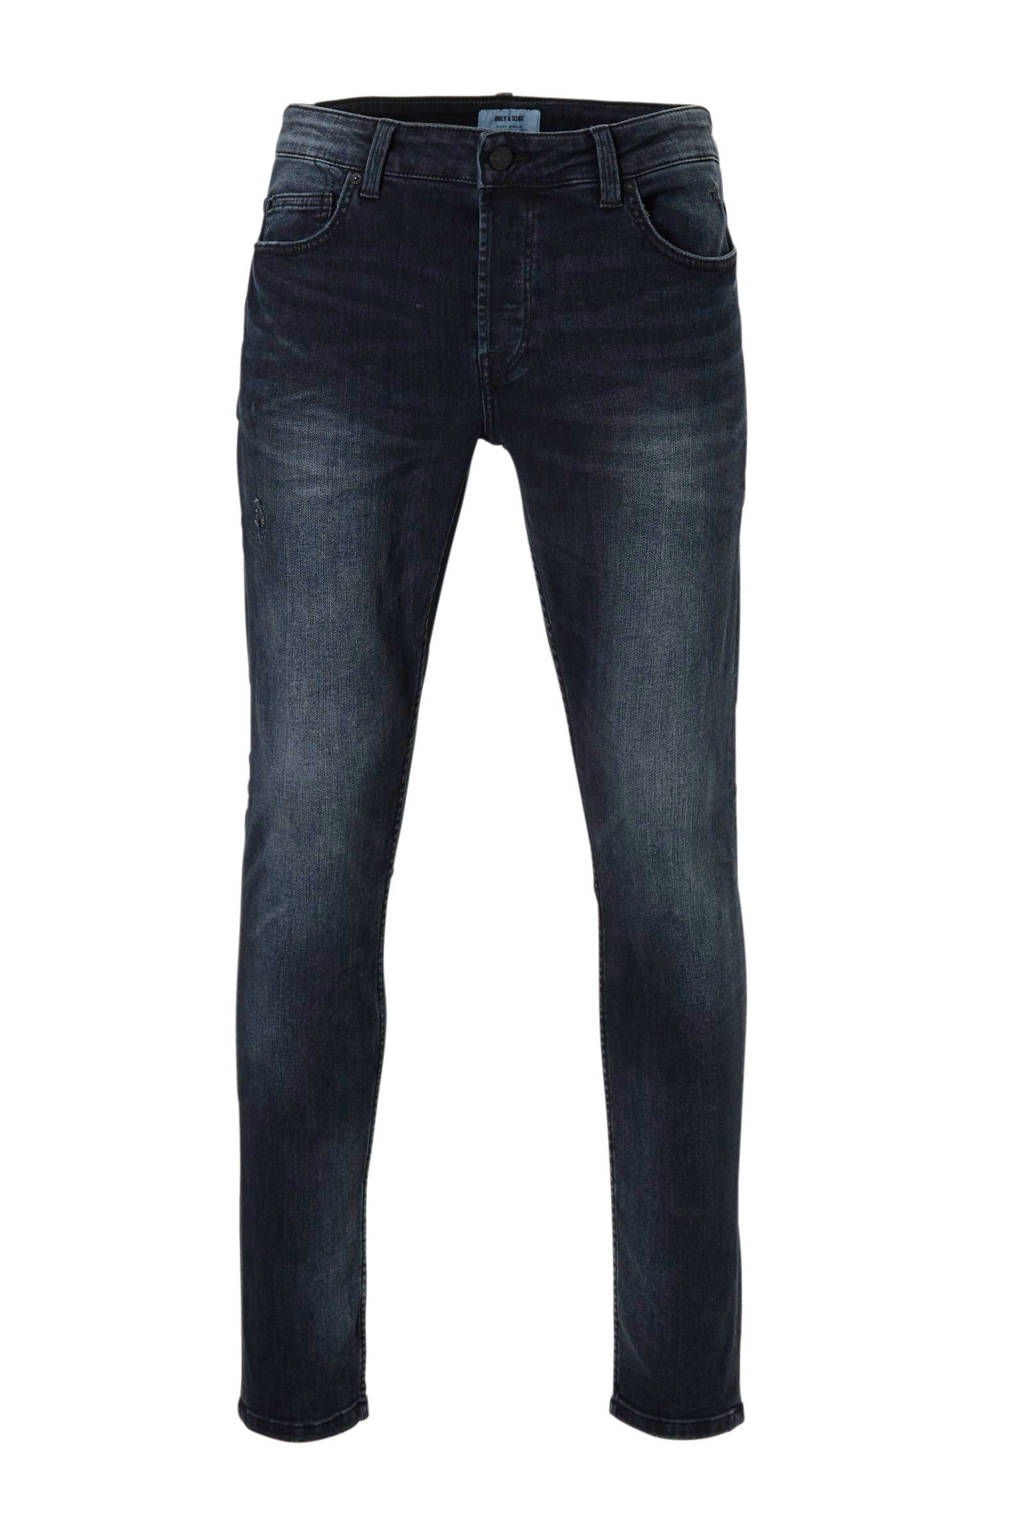 Only & Sons  tapered tapered jeans, Dark denim